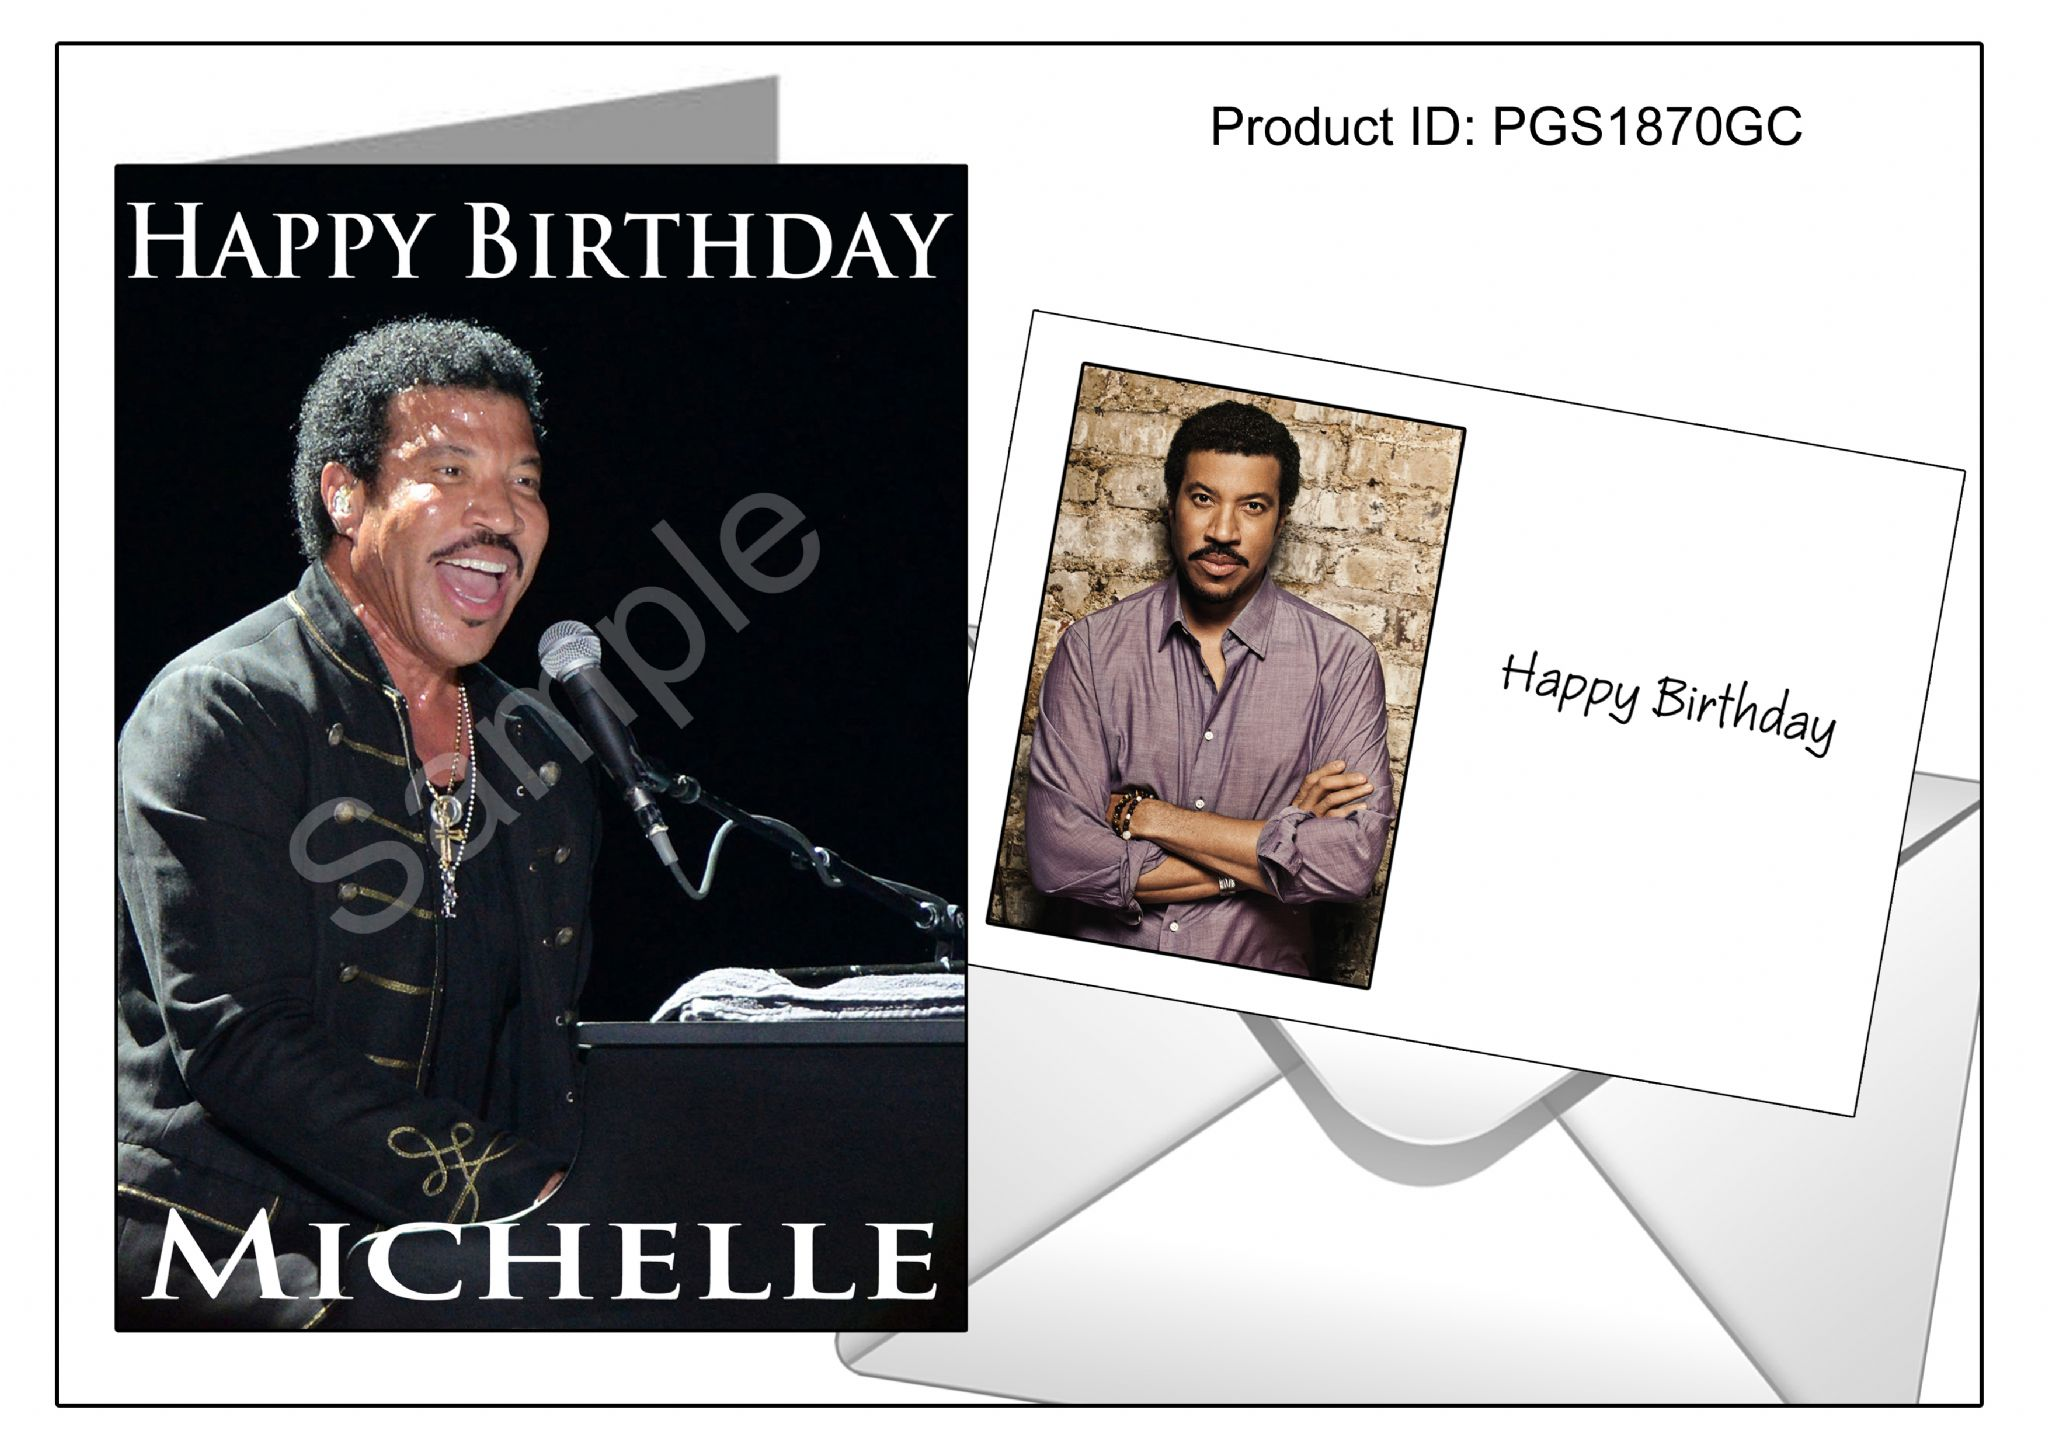 lionel richie happy birthday ; lionel-richie-birthday-card-a5-personalised-pgs1870gc-%5b2%5d-6405-p